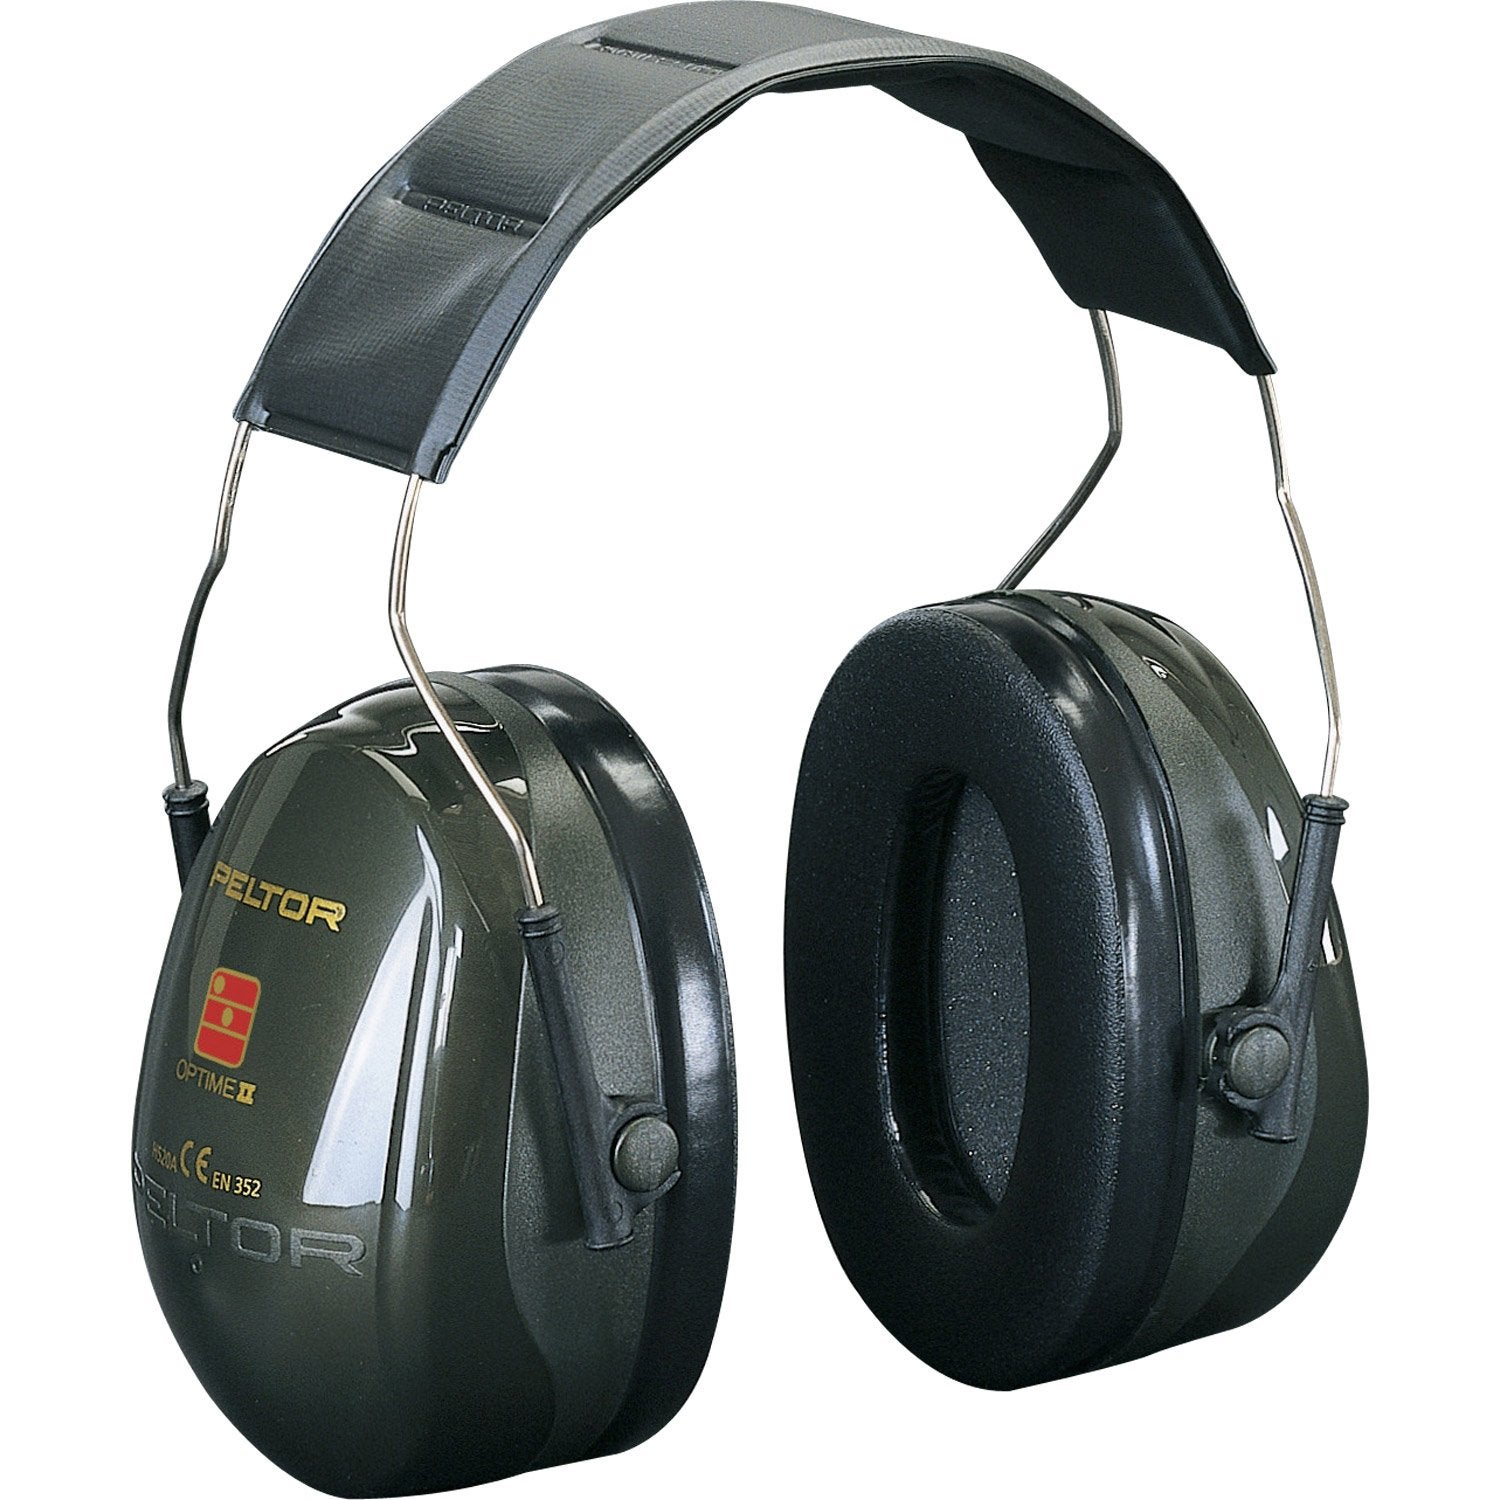 Casque de protection antibruit 3m peltor optime2 leroy merlin for Produit anti punaise de lit leroy merlin